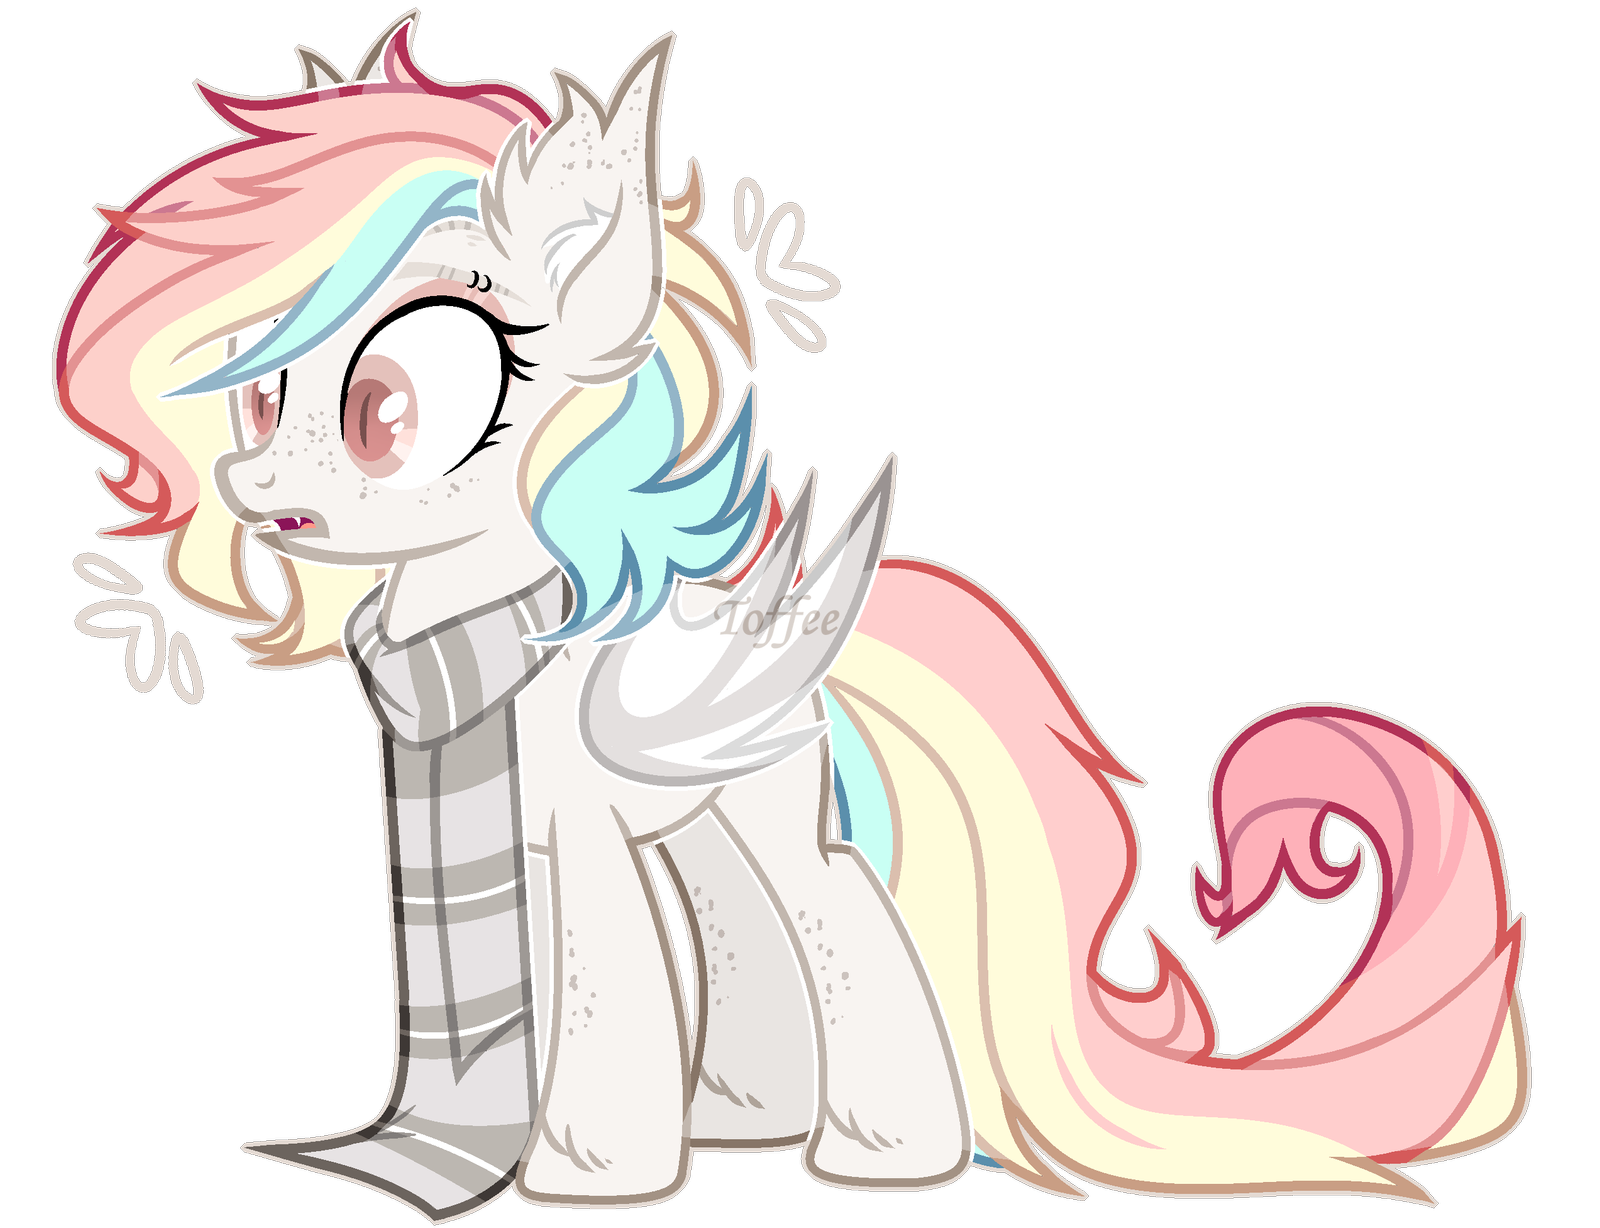 mlp oc candle holder by toffeelavender on deviantart my little pony drawing pony drawing mlp my little pony mlp oc candle holder by toffeelavender